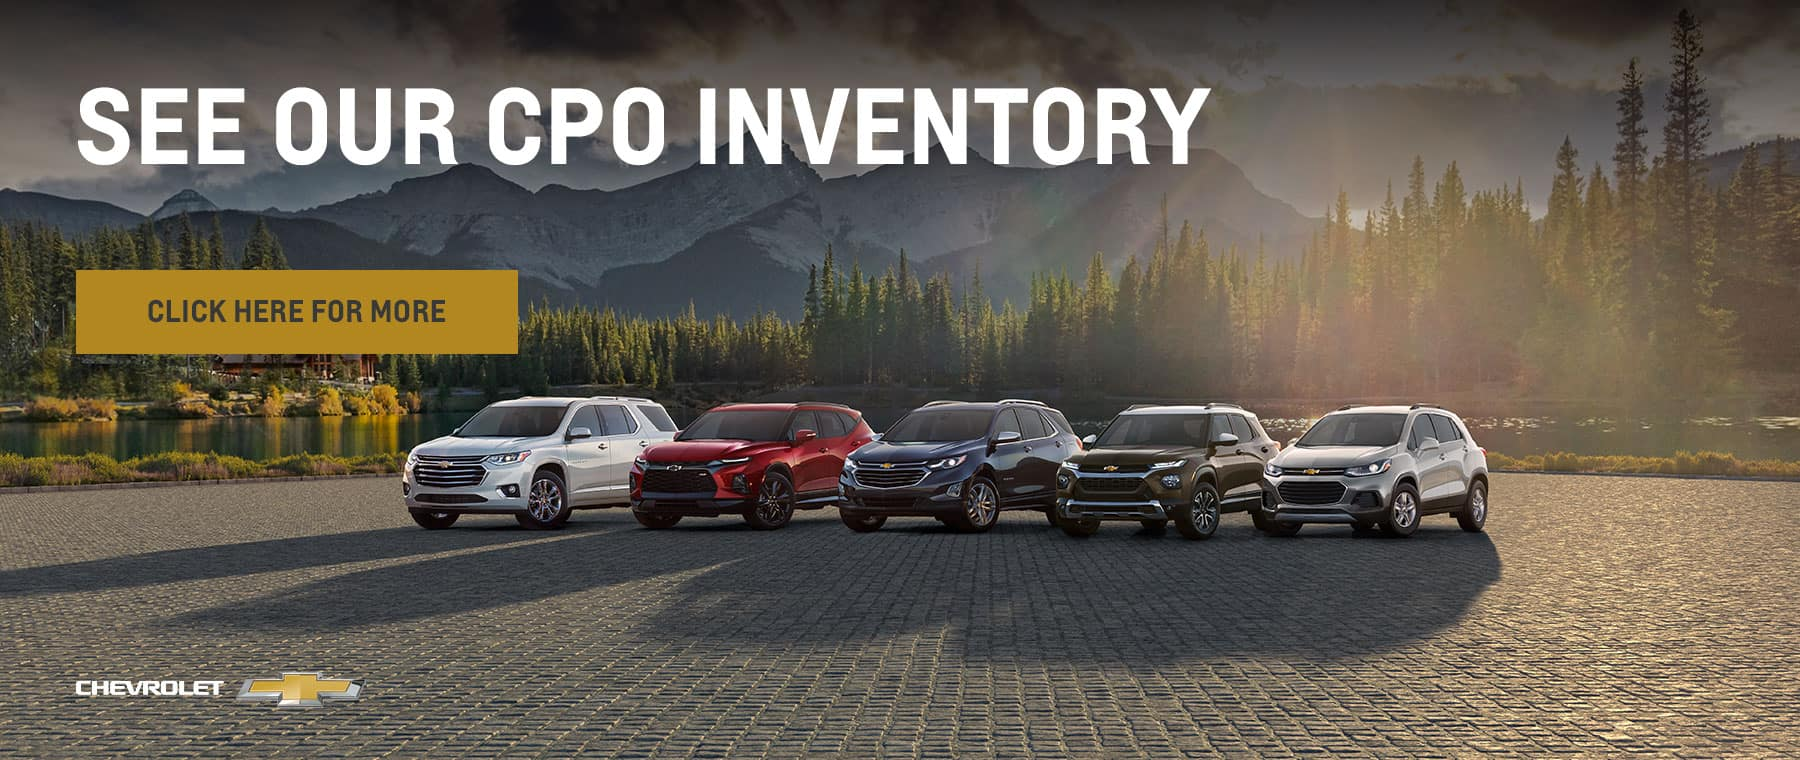 See Our CPO Inventory